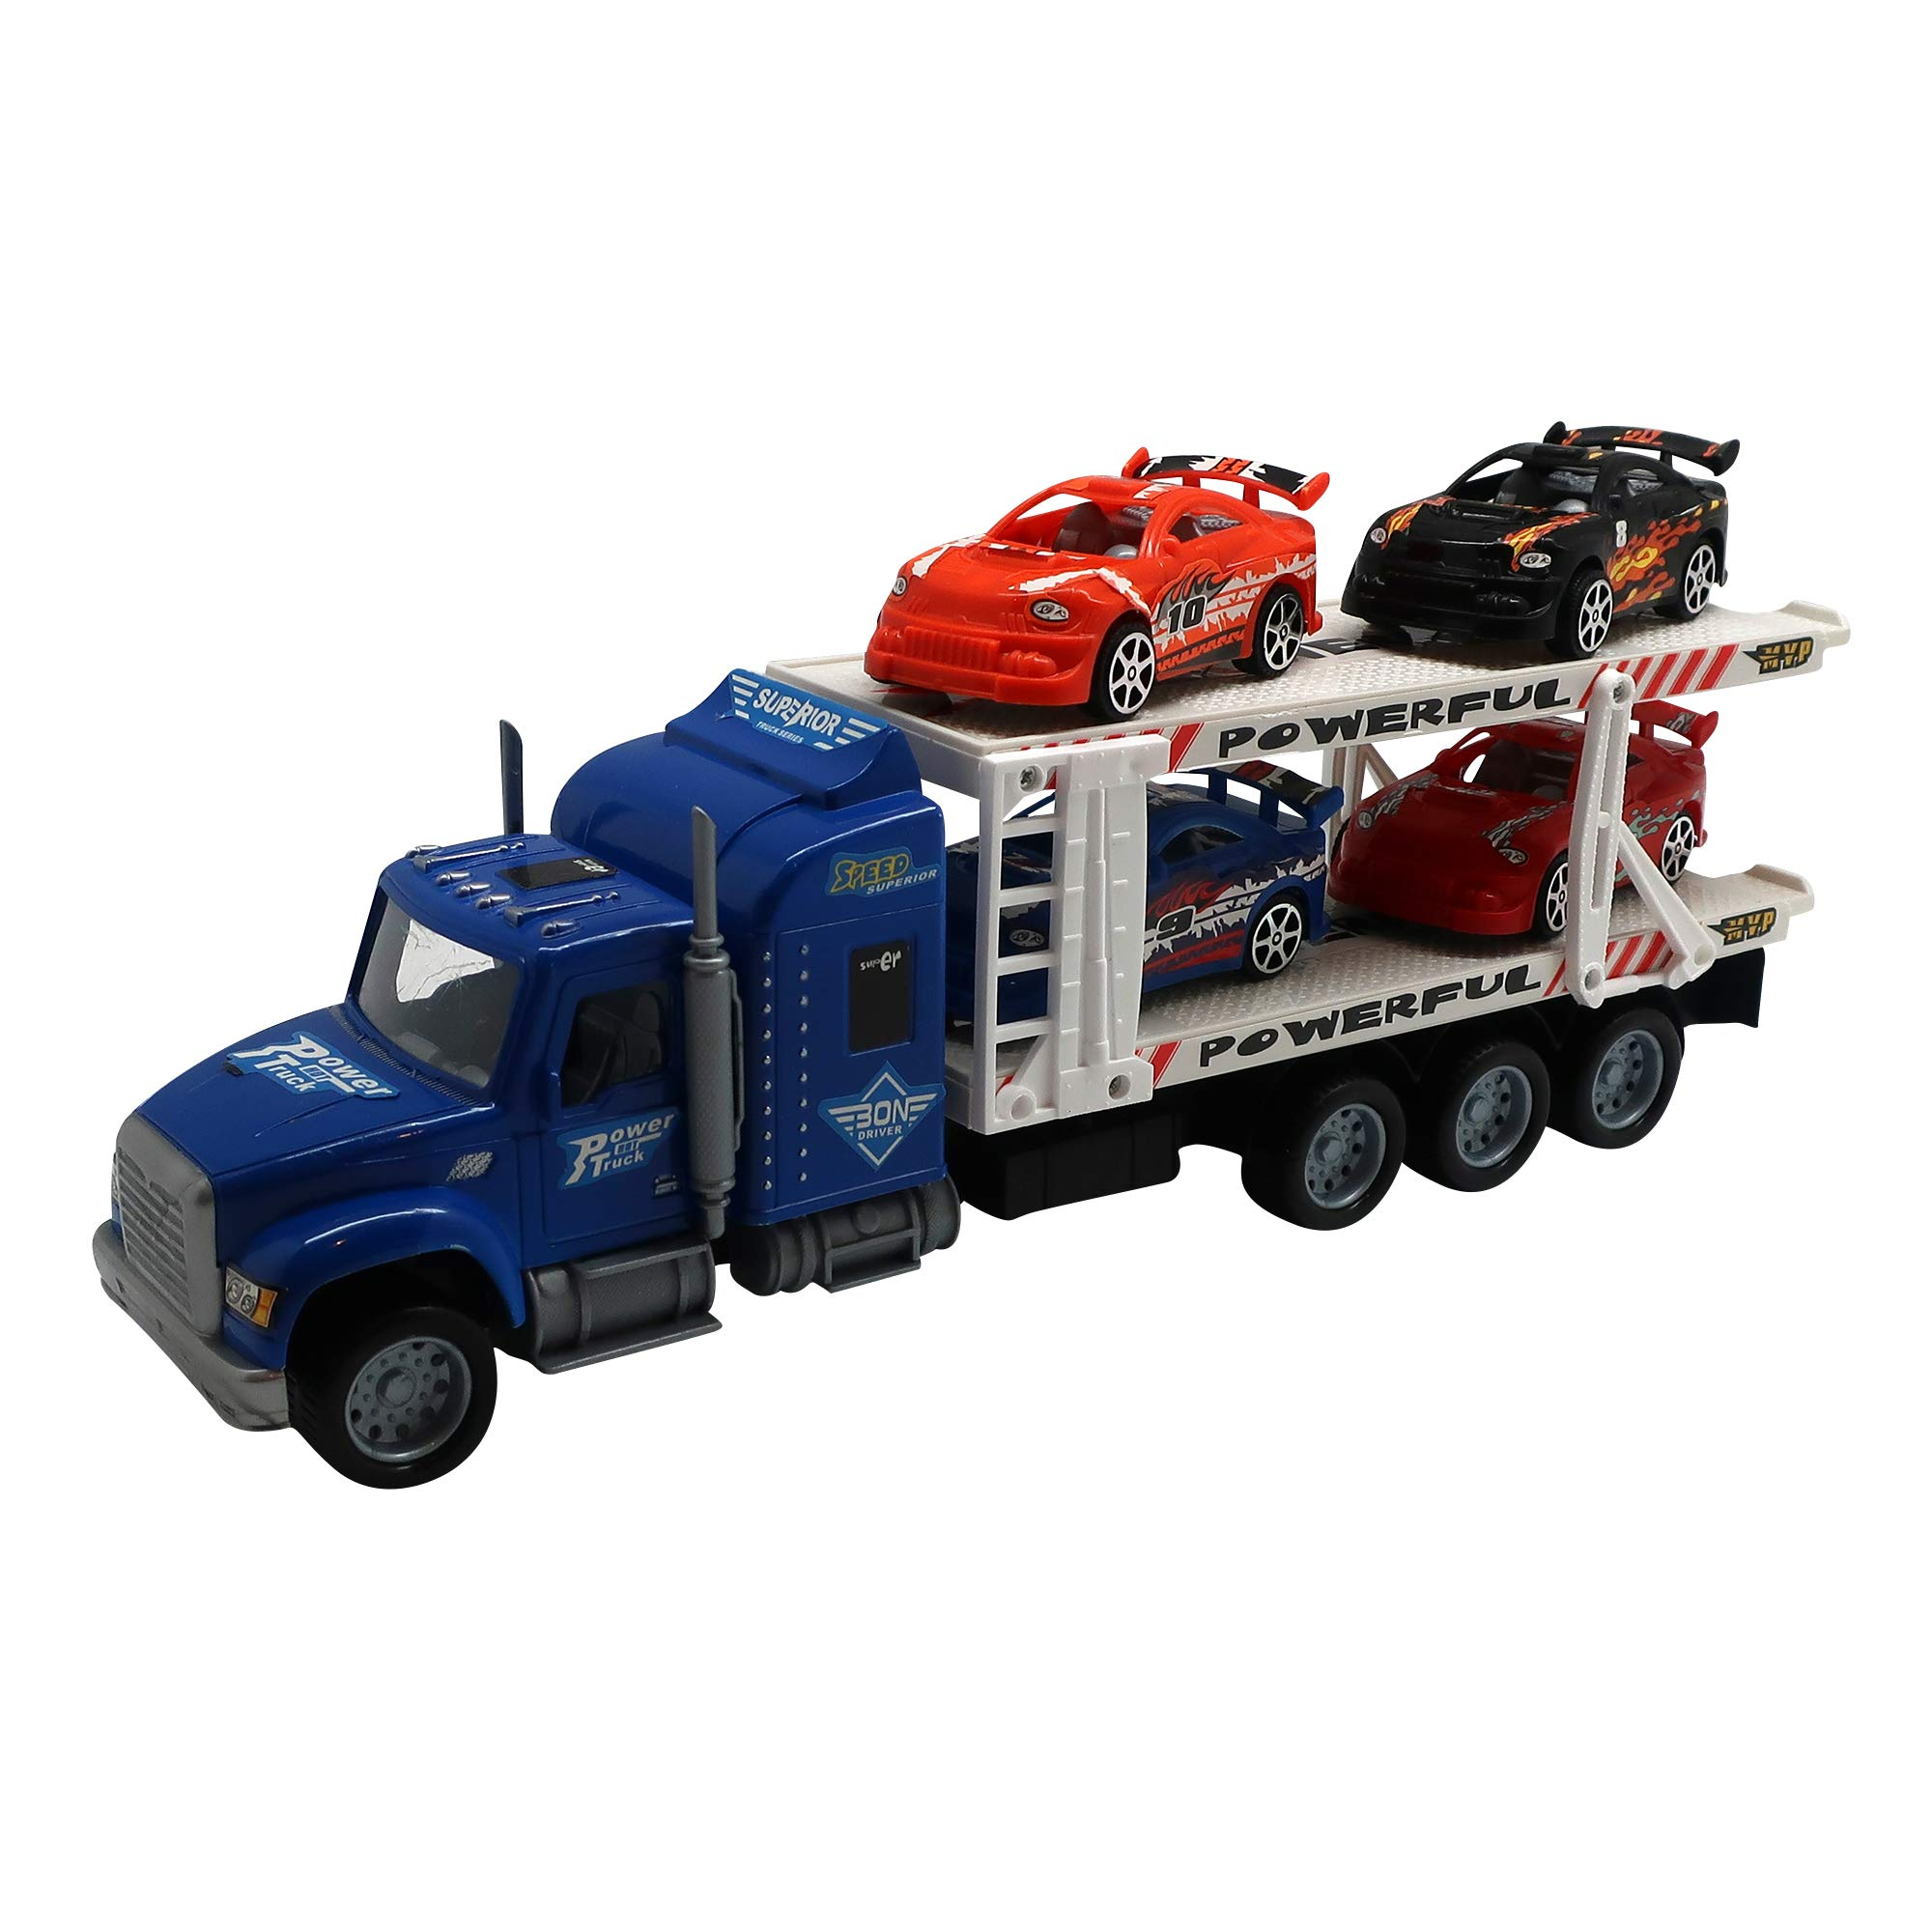 Includes 4 Mini Cars Car Carrier Truck Toy with Realistic Features Great Birthday for Boys 5 Years Old Made from Quality Materials Forest /& Twelfth Kids Transporter Truck